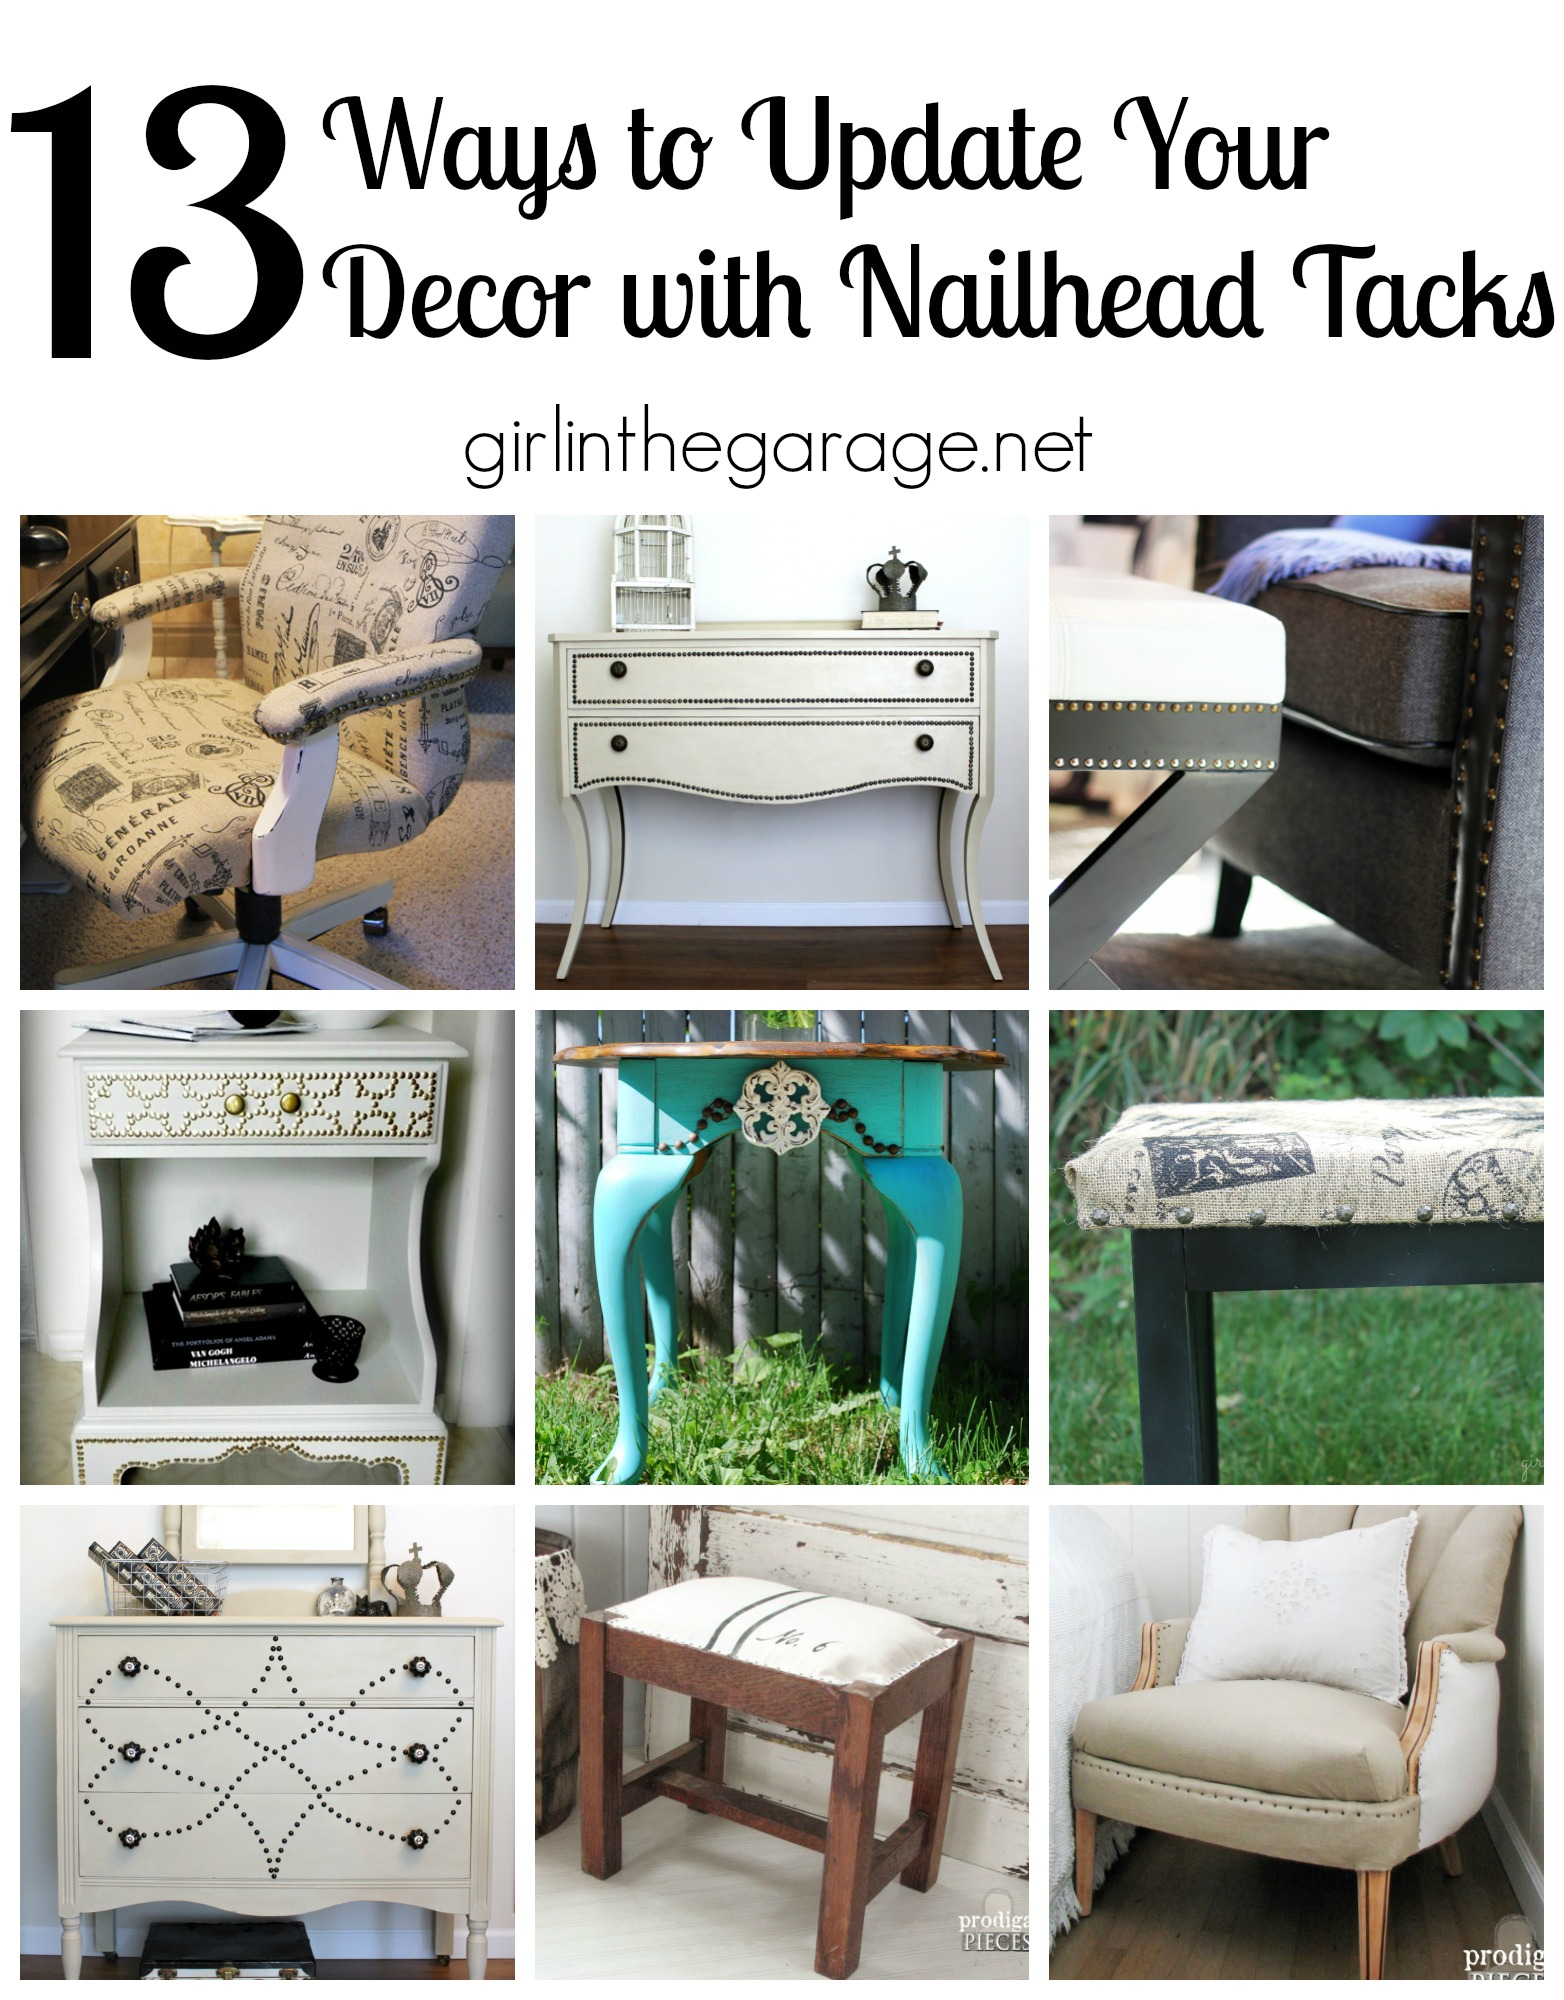 Merveilleux Itu0027s Inexpensive To Give Your Plain Furniture And Decor A High End Look  With Nailheads